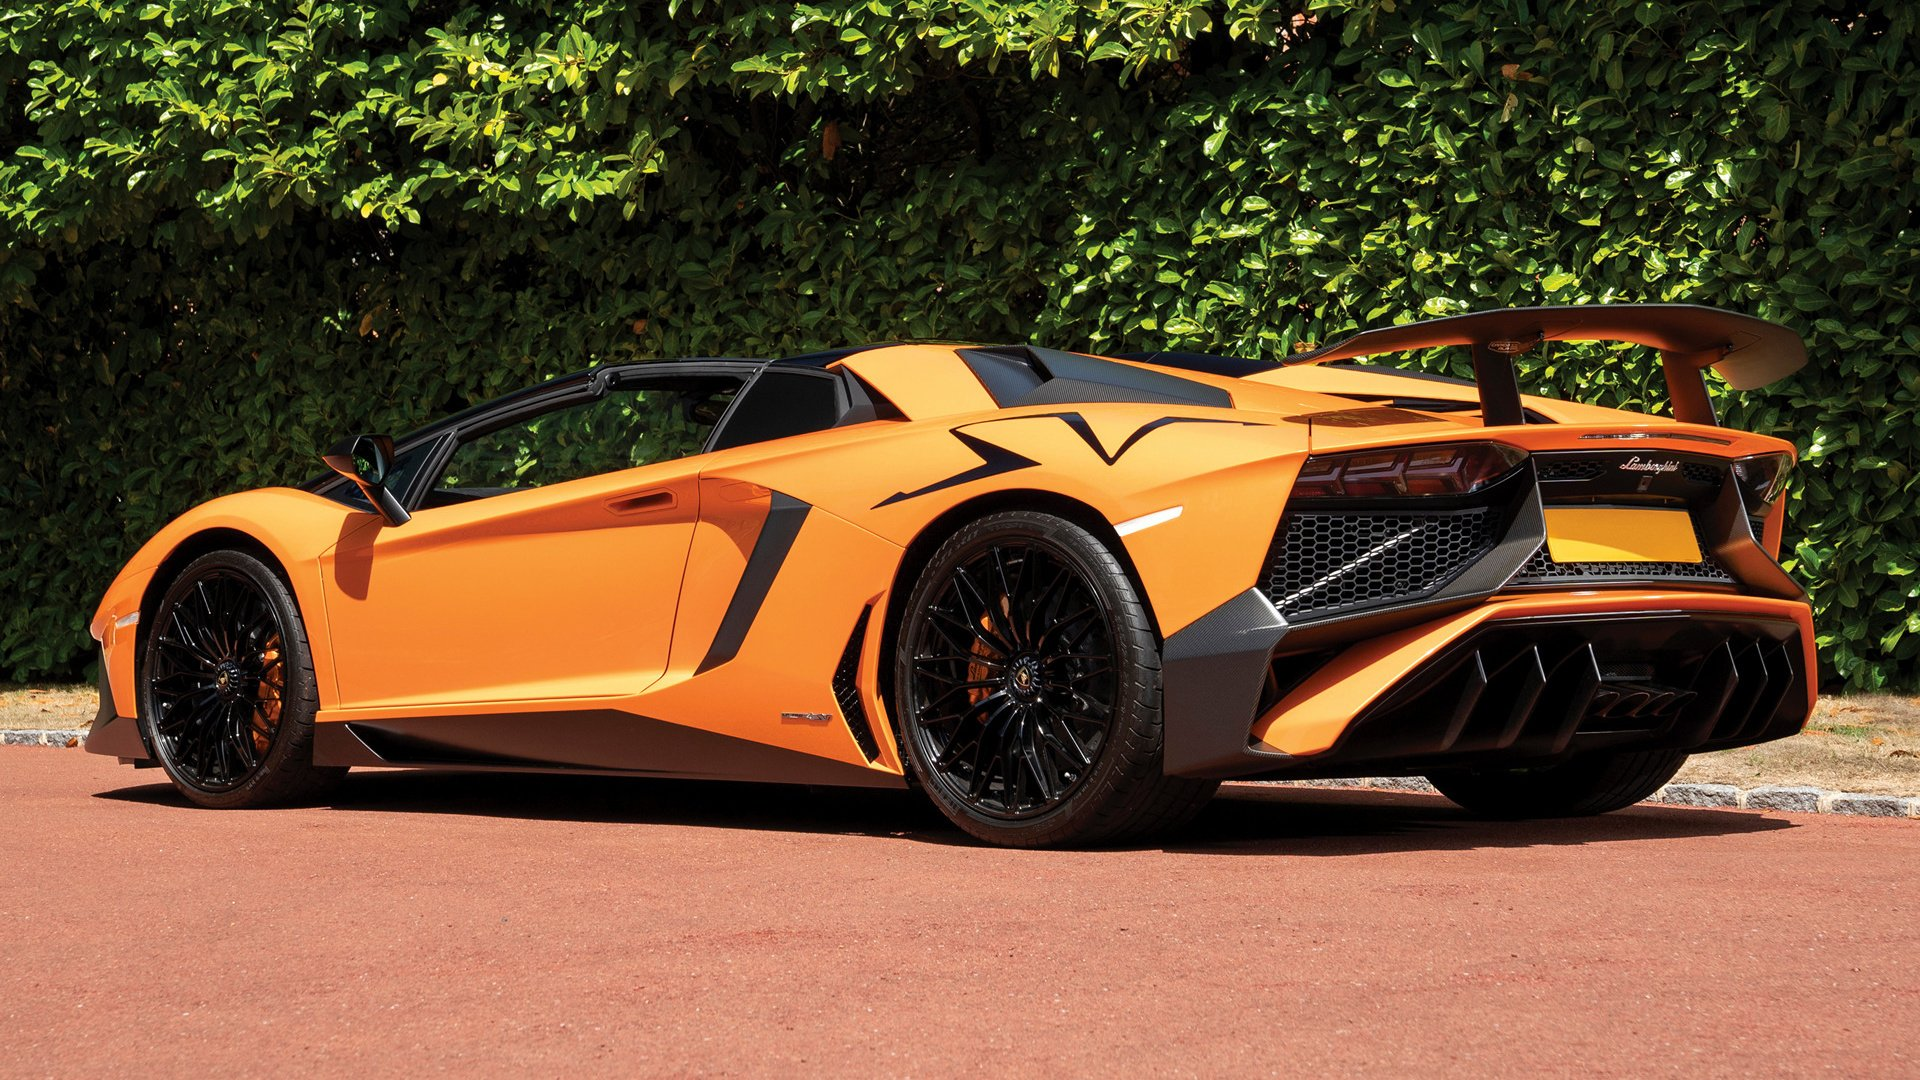 Lamborghini Aventador Lp 750 4 Superveloce Hd Wallpaper